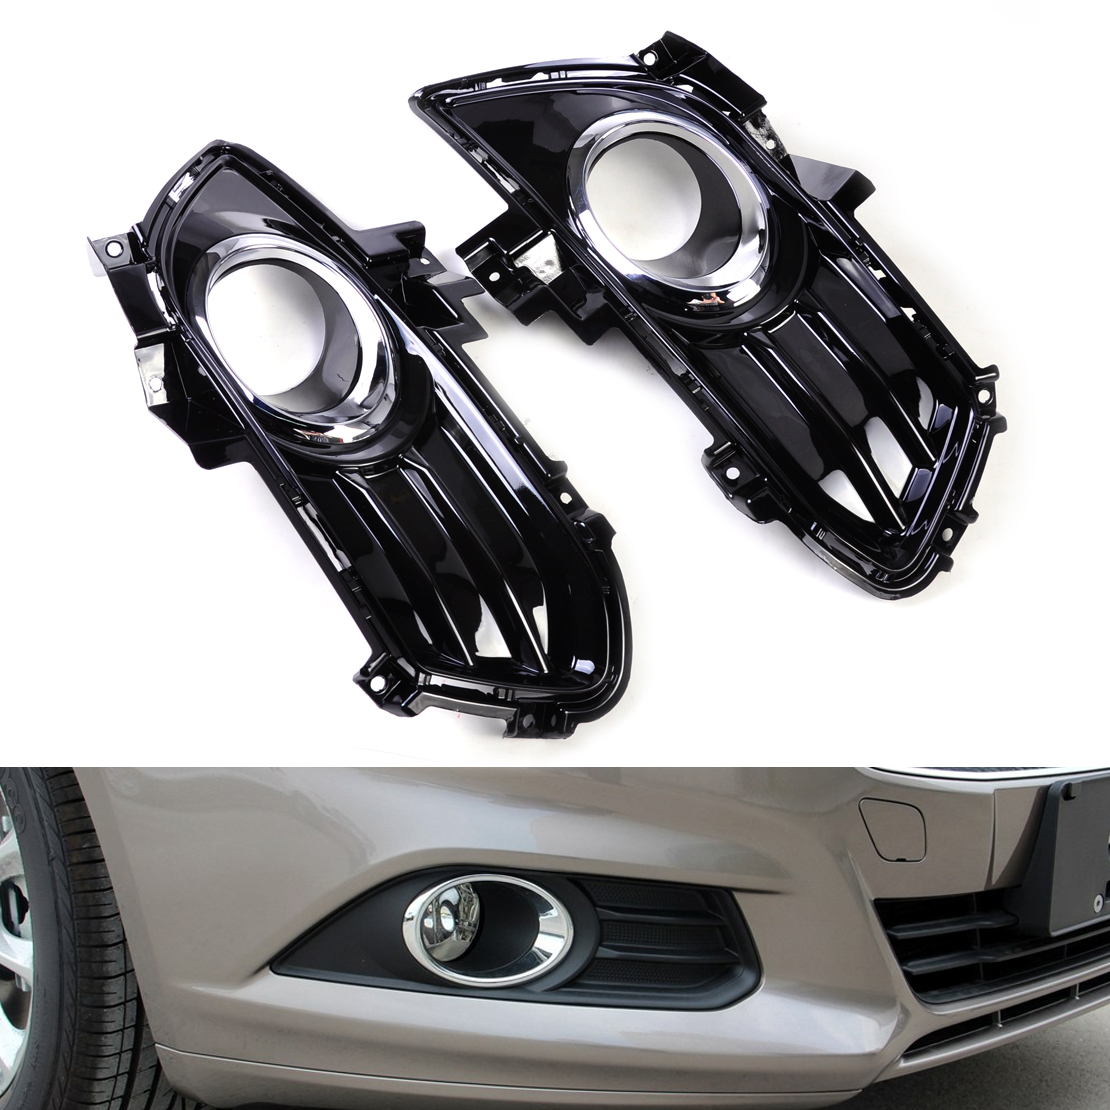 DWCX New Gloss Black Fog Light Lamp Grill Grille Cover DS73-19952CAW SL666 Fit for Ford Fusion Mondeo 2013 2014 2015 for ford fusion mondeo 2013 2014 2015 control glass water panel protective film stickers carbon cover